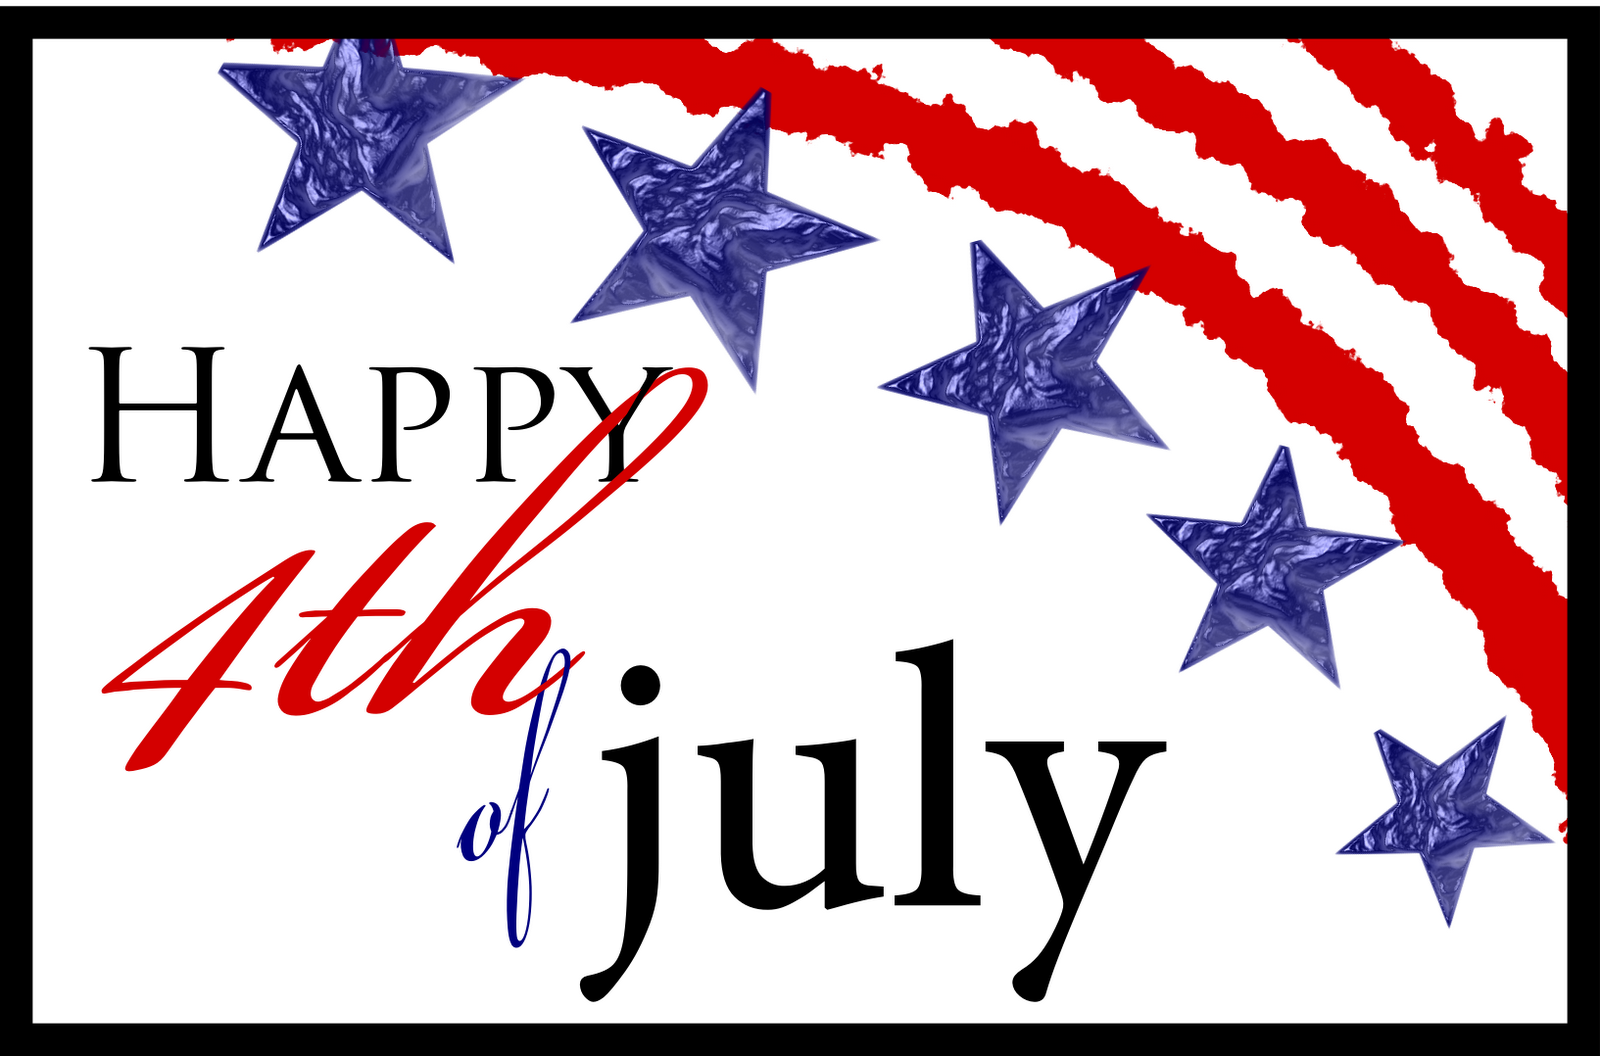 4th Of July Free Images | Free Download -4th Of July Free Images | Free Download Clip Art | Free Clip Art ..-3